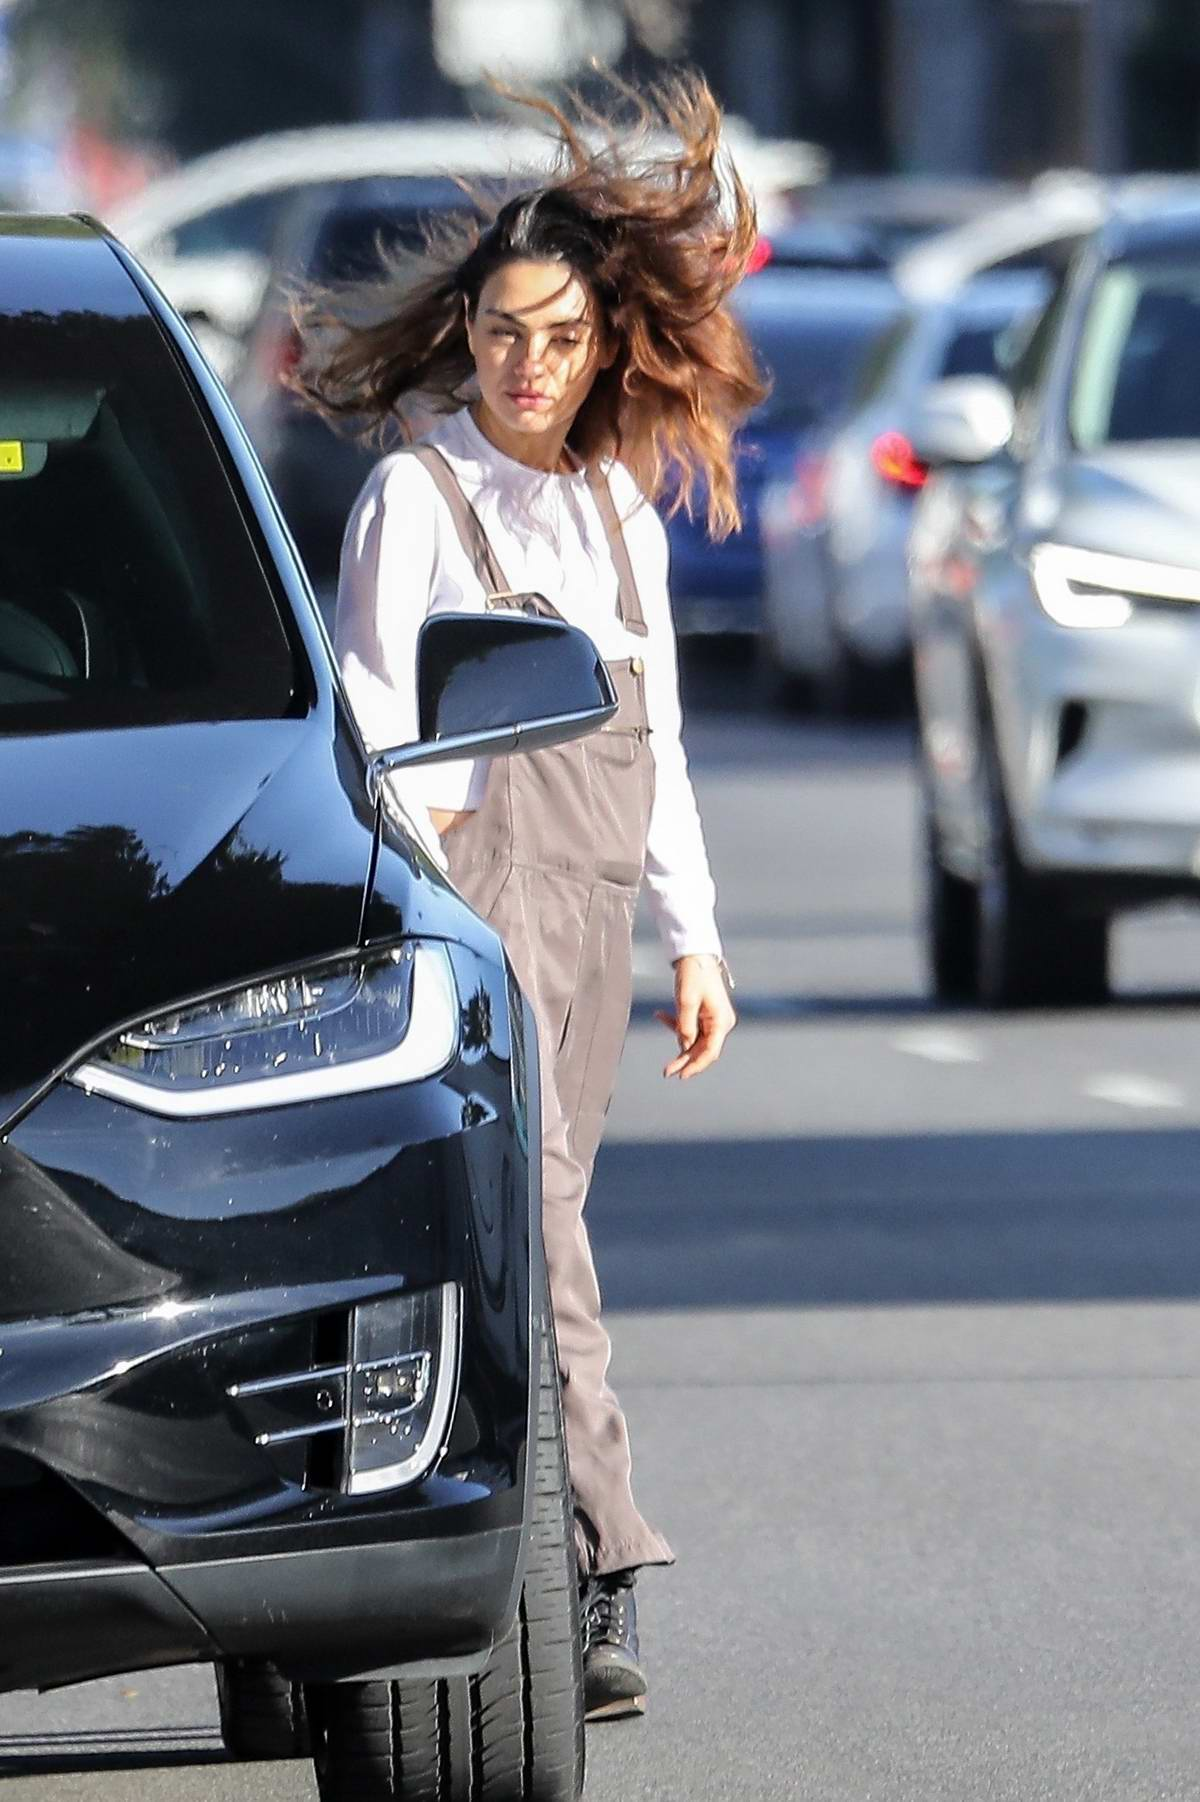 Mila Kunis steps out to grab a coffee on a windy day in Los Angeles